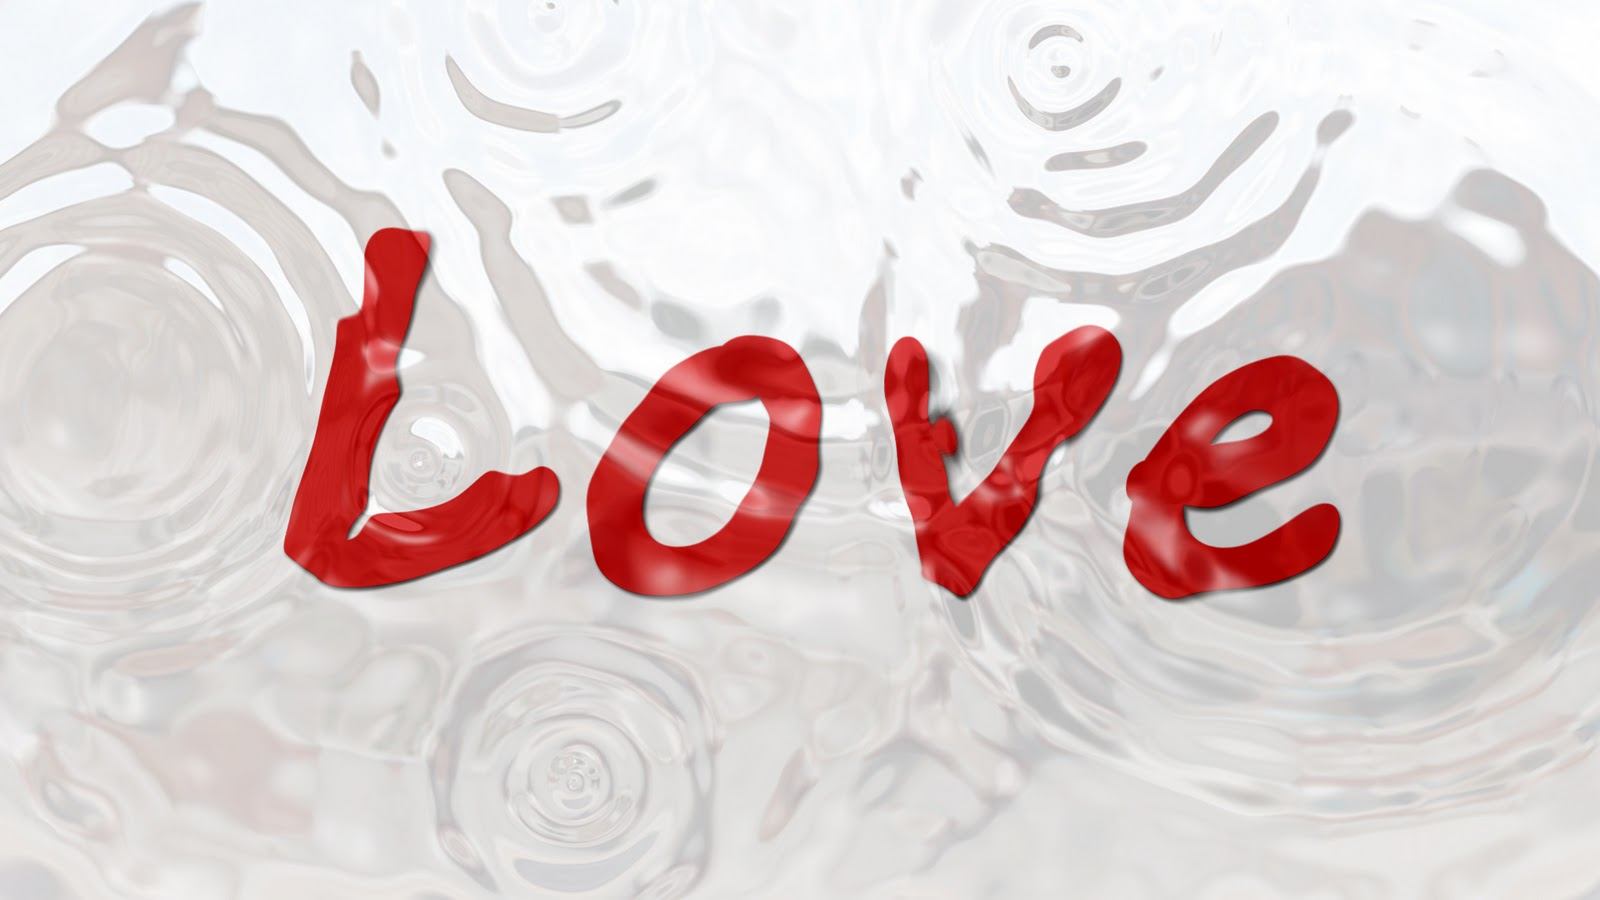 Love Wallpaper P Name : Desktop Wallpapers,Animals Wallpapers,Flowers Wallpapers ...